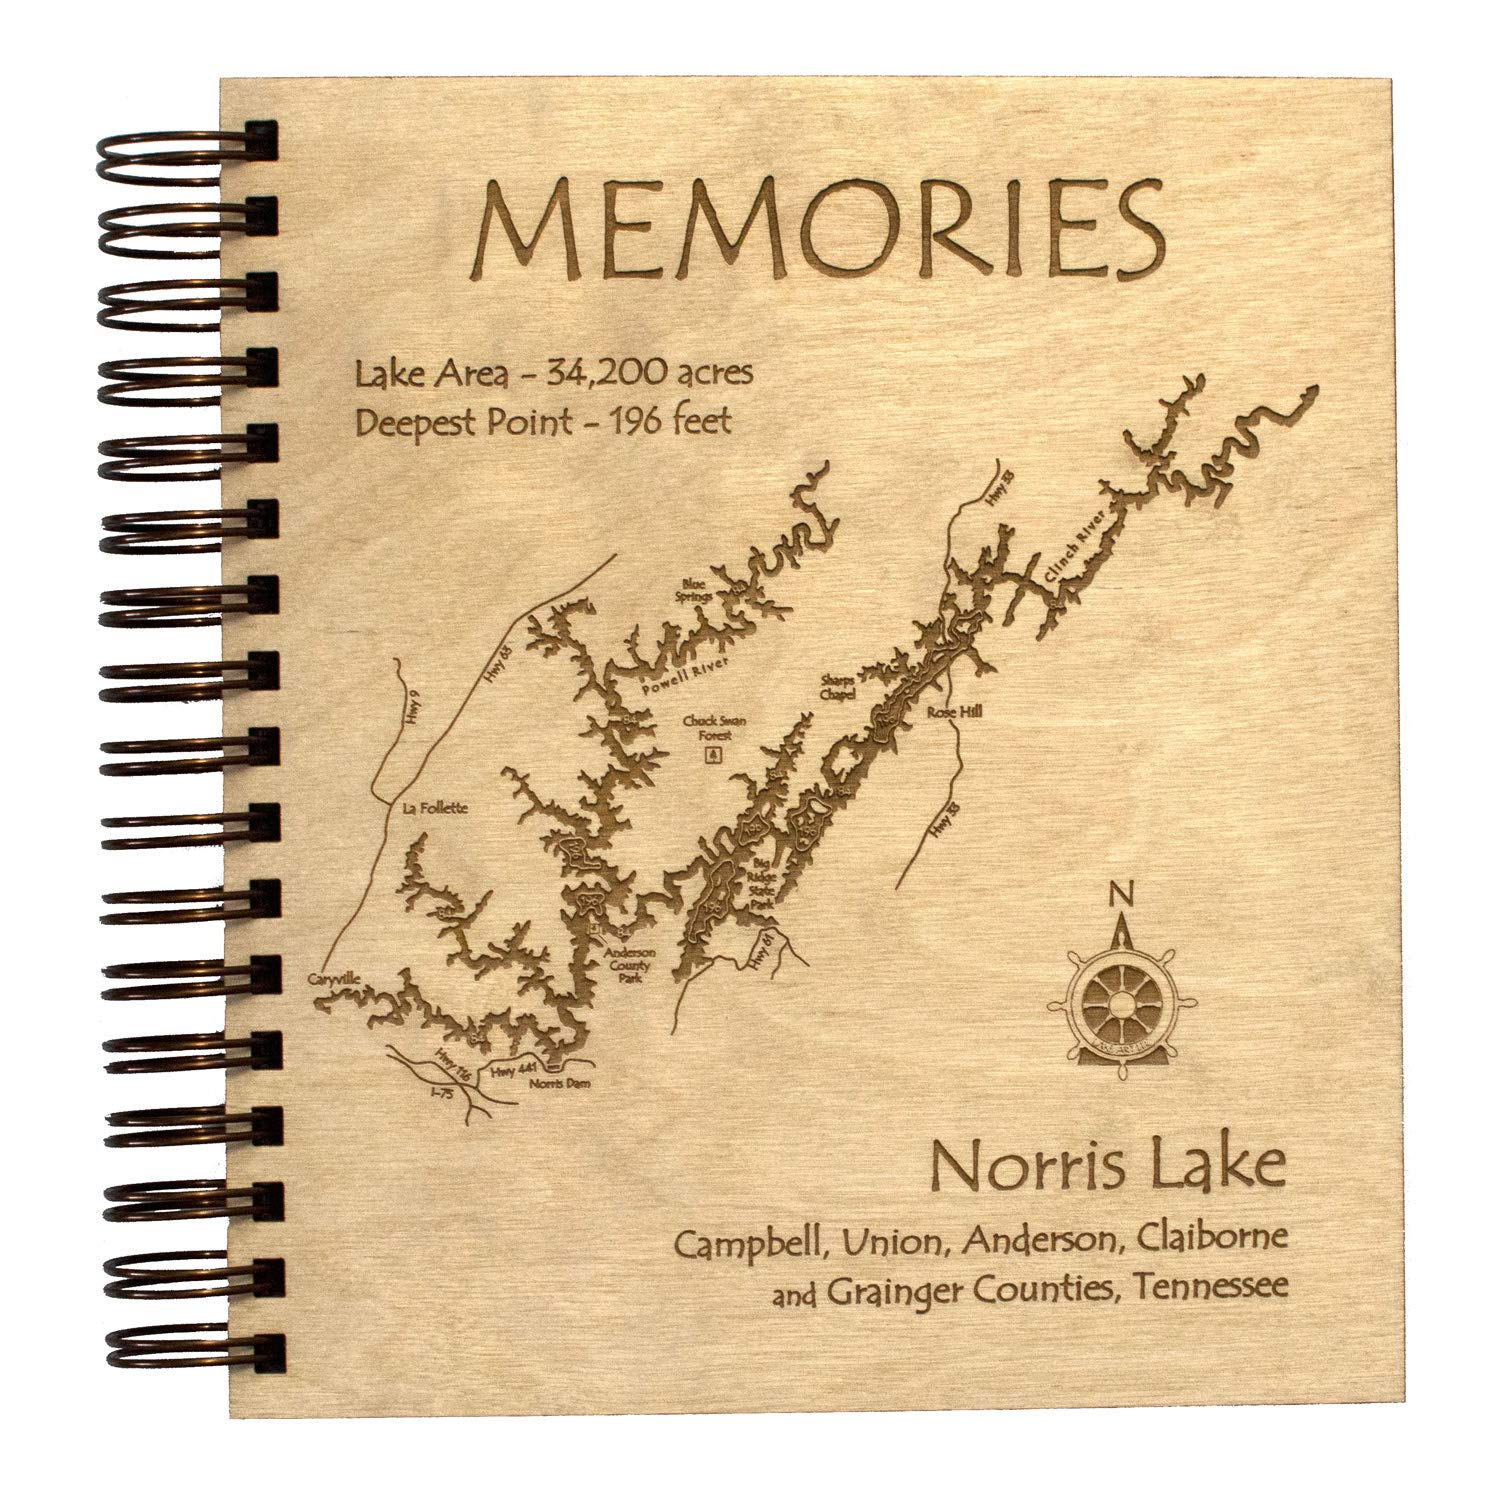 Lake Rabun - Rabun County - GA (Proof Required) - Etched Lake Photo Album 9 x 8 in - Laser Etched Wood Nautical Chart and Topographic Depth map.